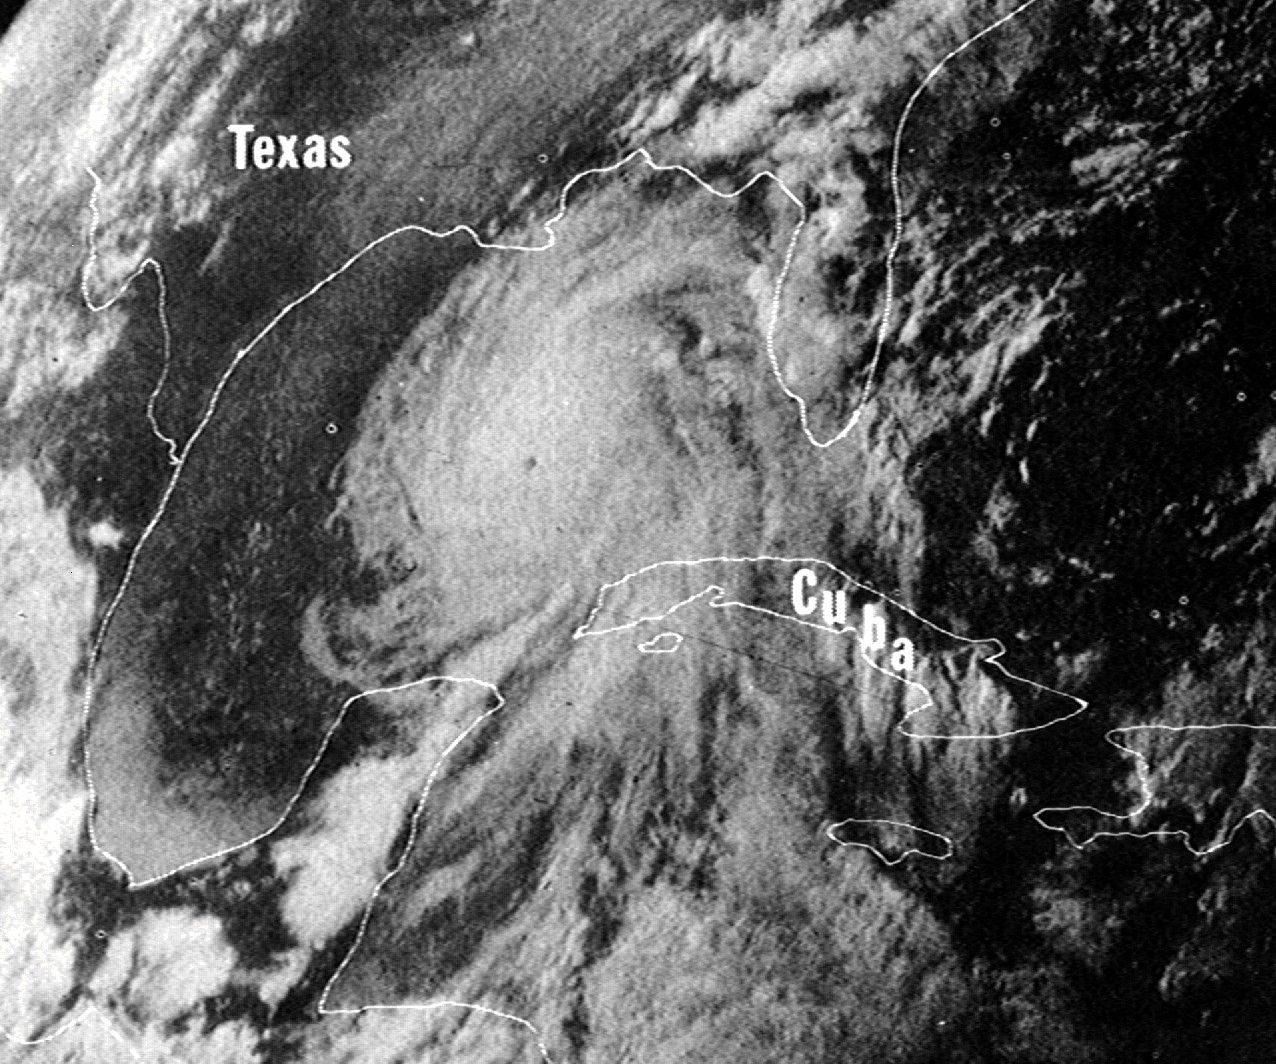 photo:NOAA / National Climatic Data Center; desc:Hurricane Camille on August 16, 1969. Image capture by NASA's ATS III satellite. ;